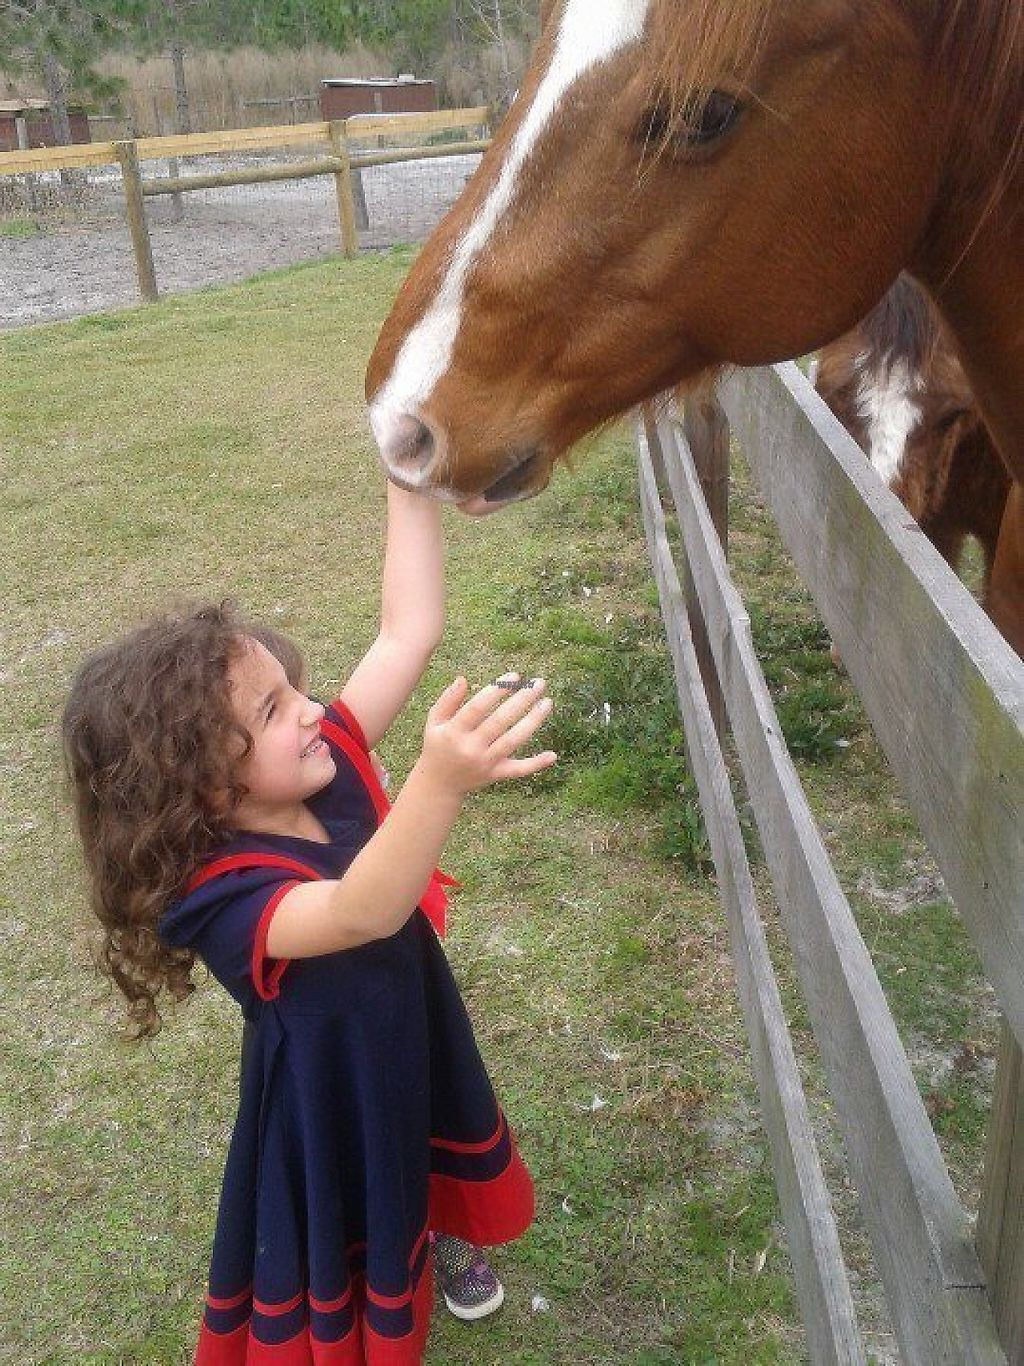 """Photo of CJ Acres Animal Rescue Farm  by <a href=""""/members/profile/EdwardElliott"""">EdwardElliott</a> <br/>Tours are very animal interactive! <br/> November 16, 2016  - <a href='/contact/abuse/image/44536/191017'>Report</a>"""